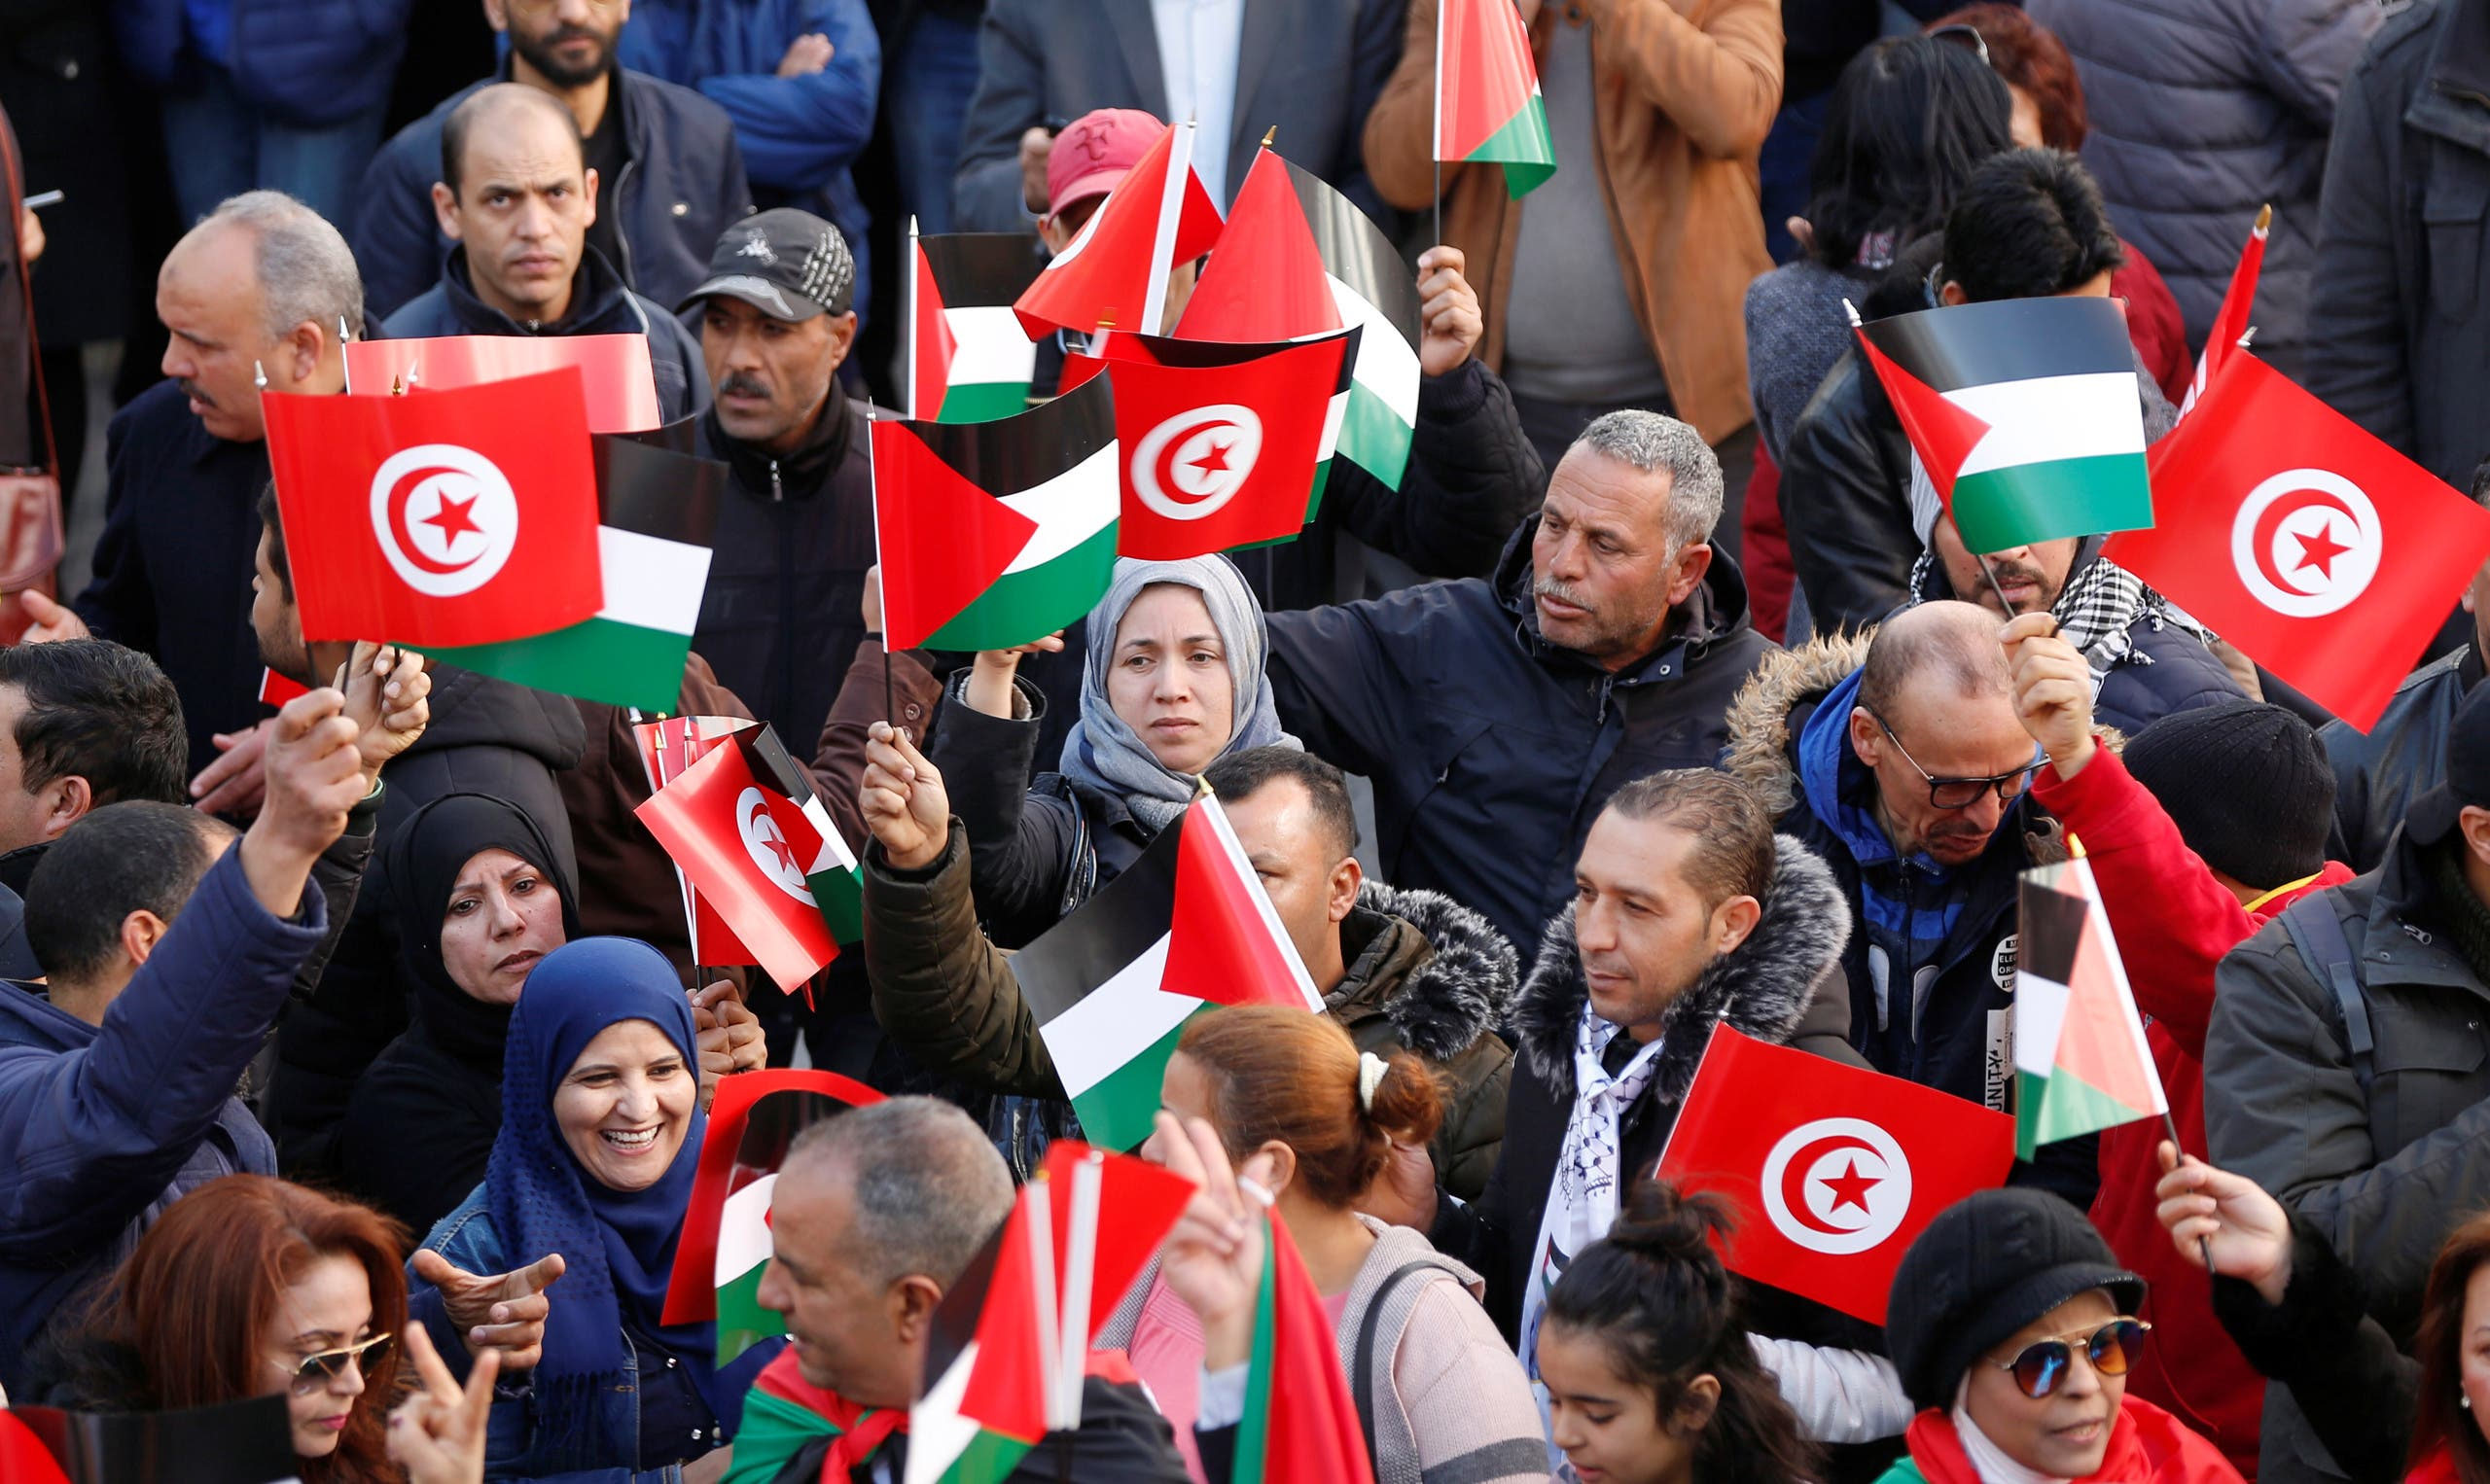 Protesters holding Palestinian and Tunisian flags shout slogans during a protest against U.S. President Donald Trump's Middle East peace plan, in the down town of Tunis, Tunisia February 5, 2020. (Reuters)